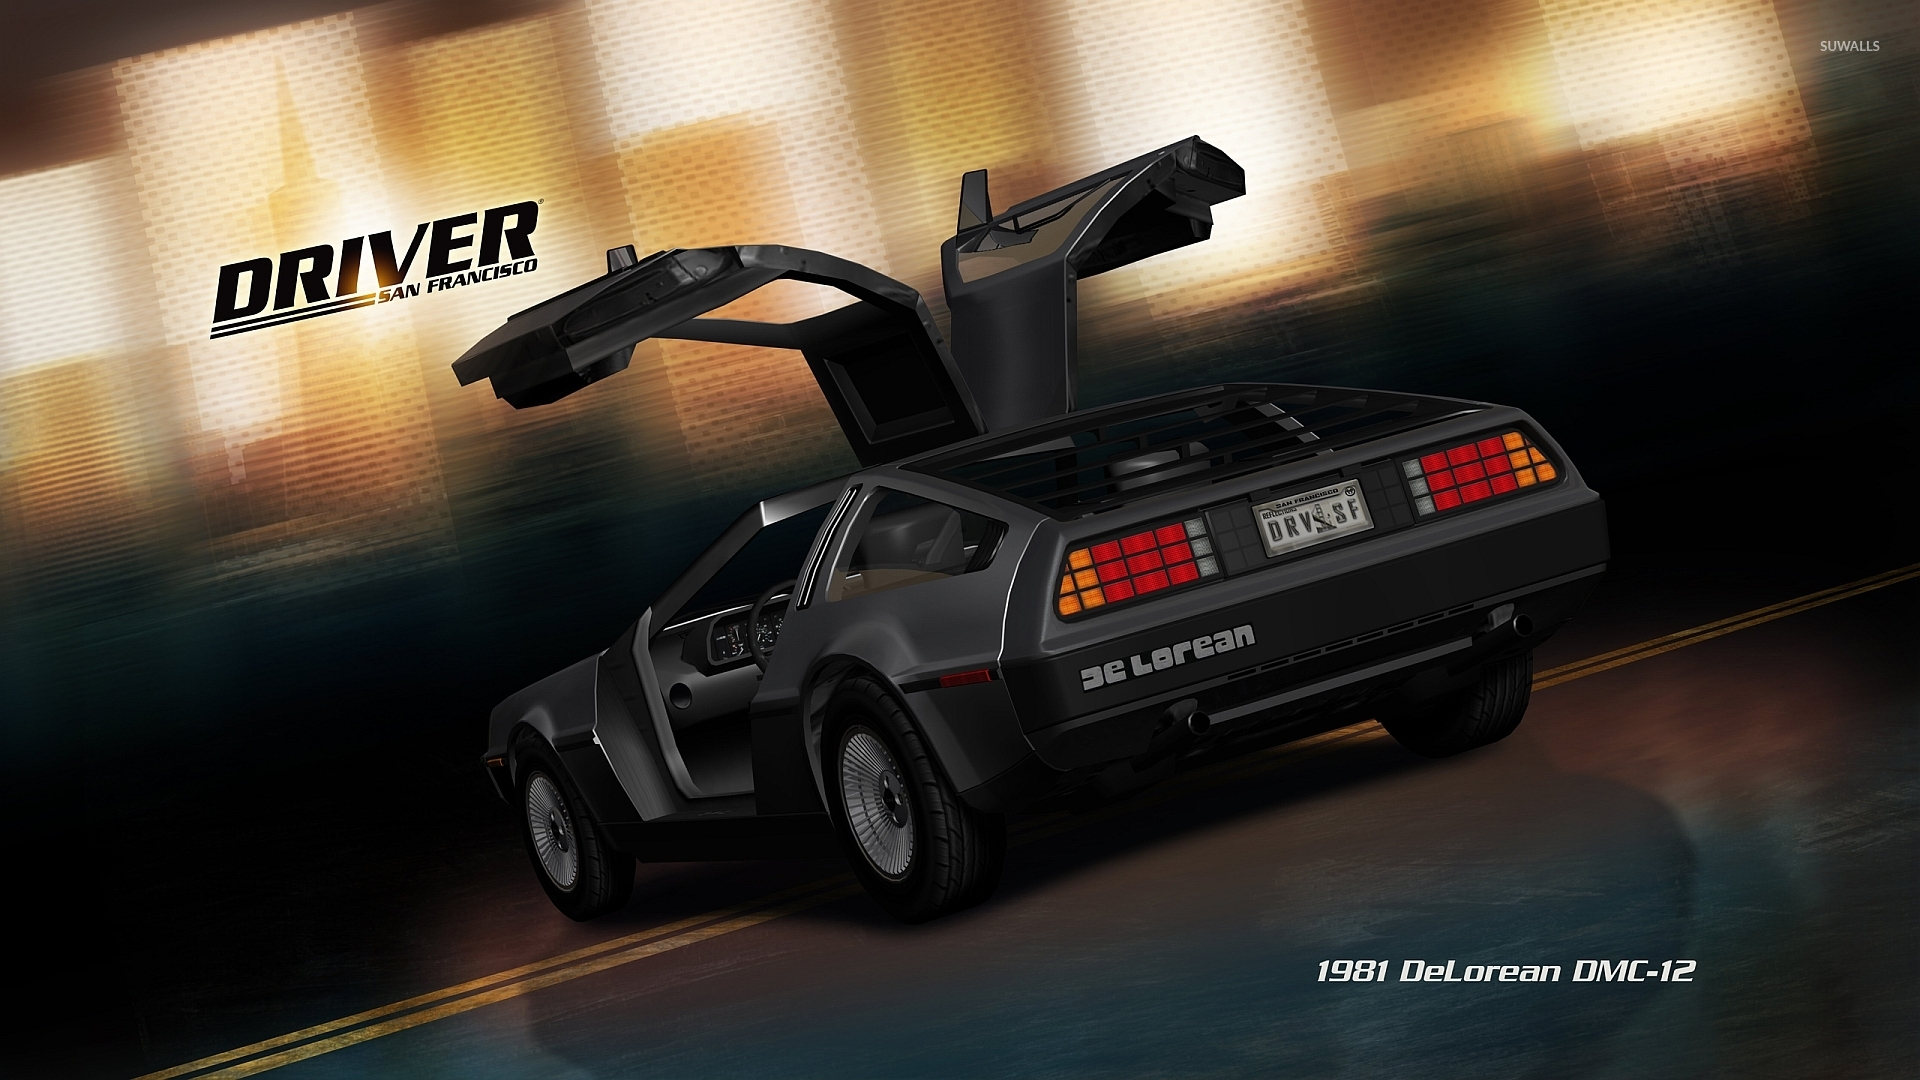 delorean wallpaper download - photo #20